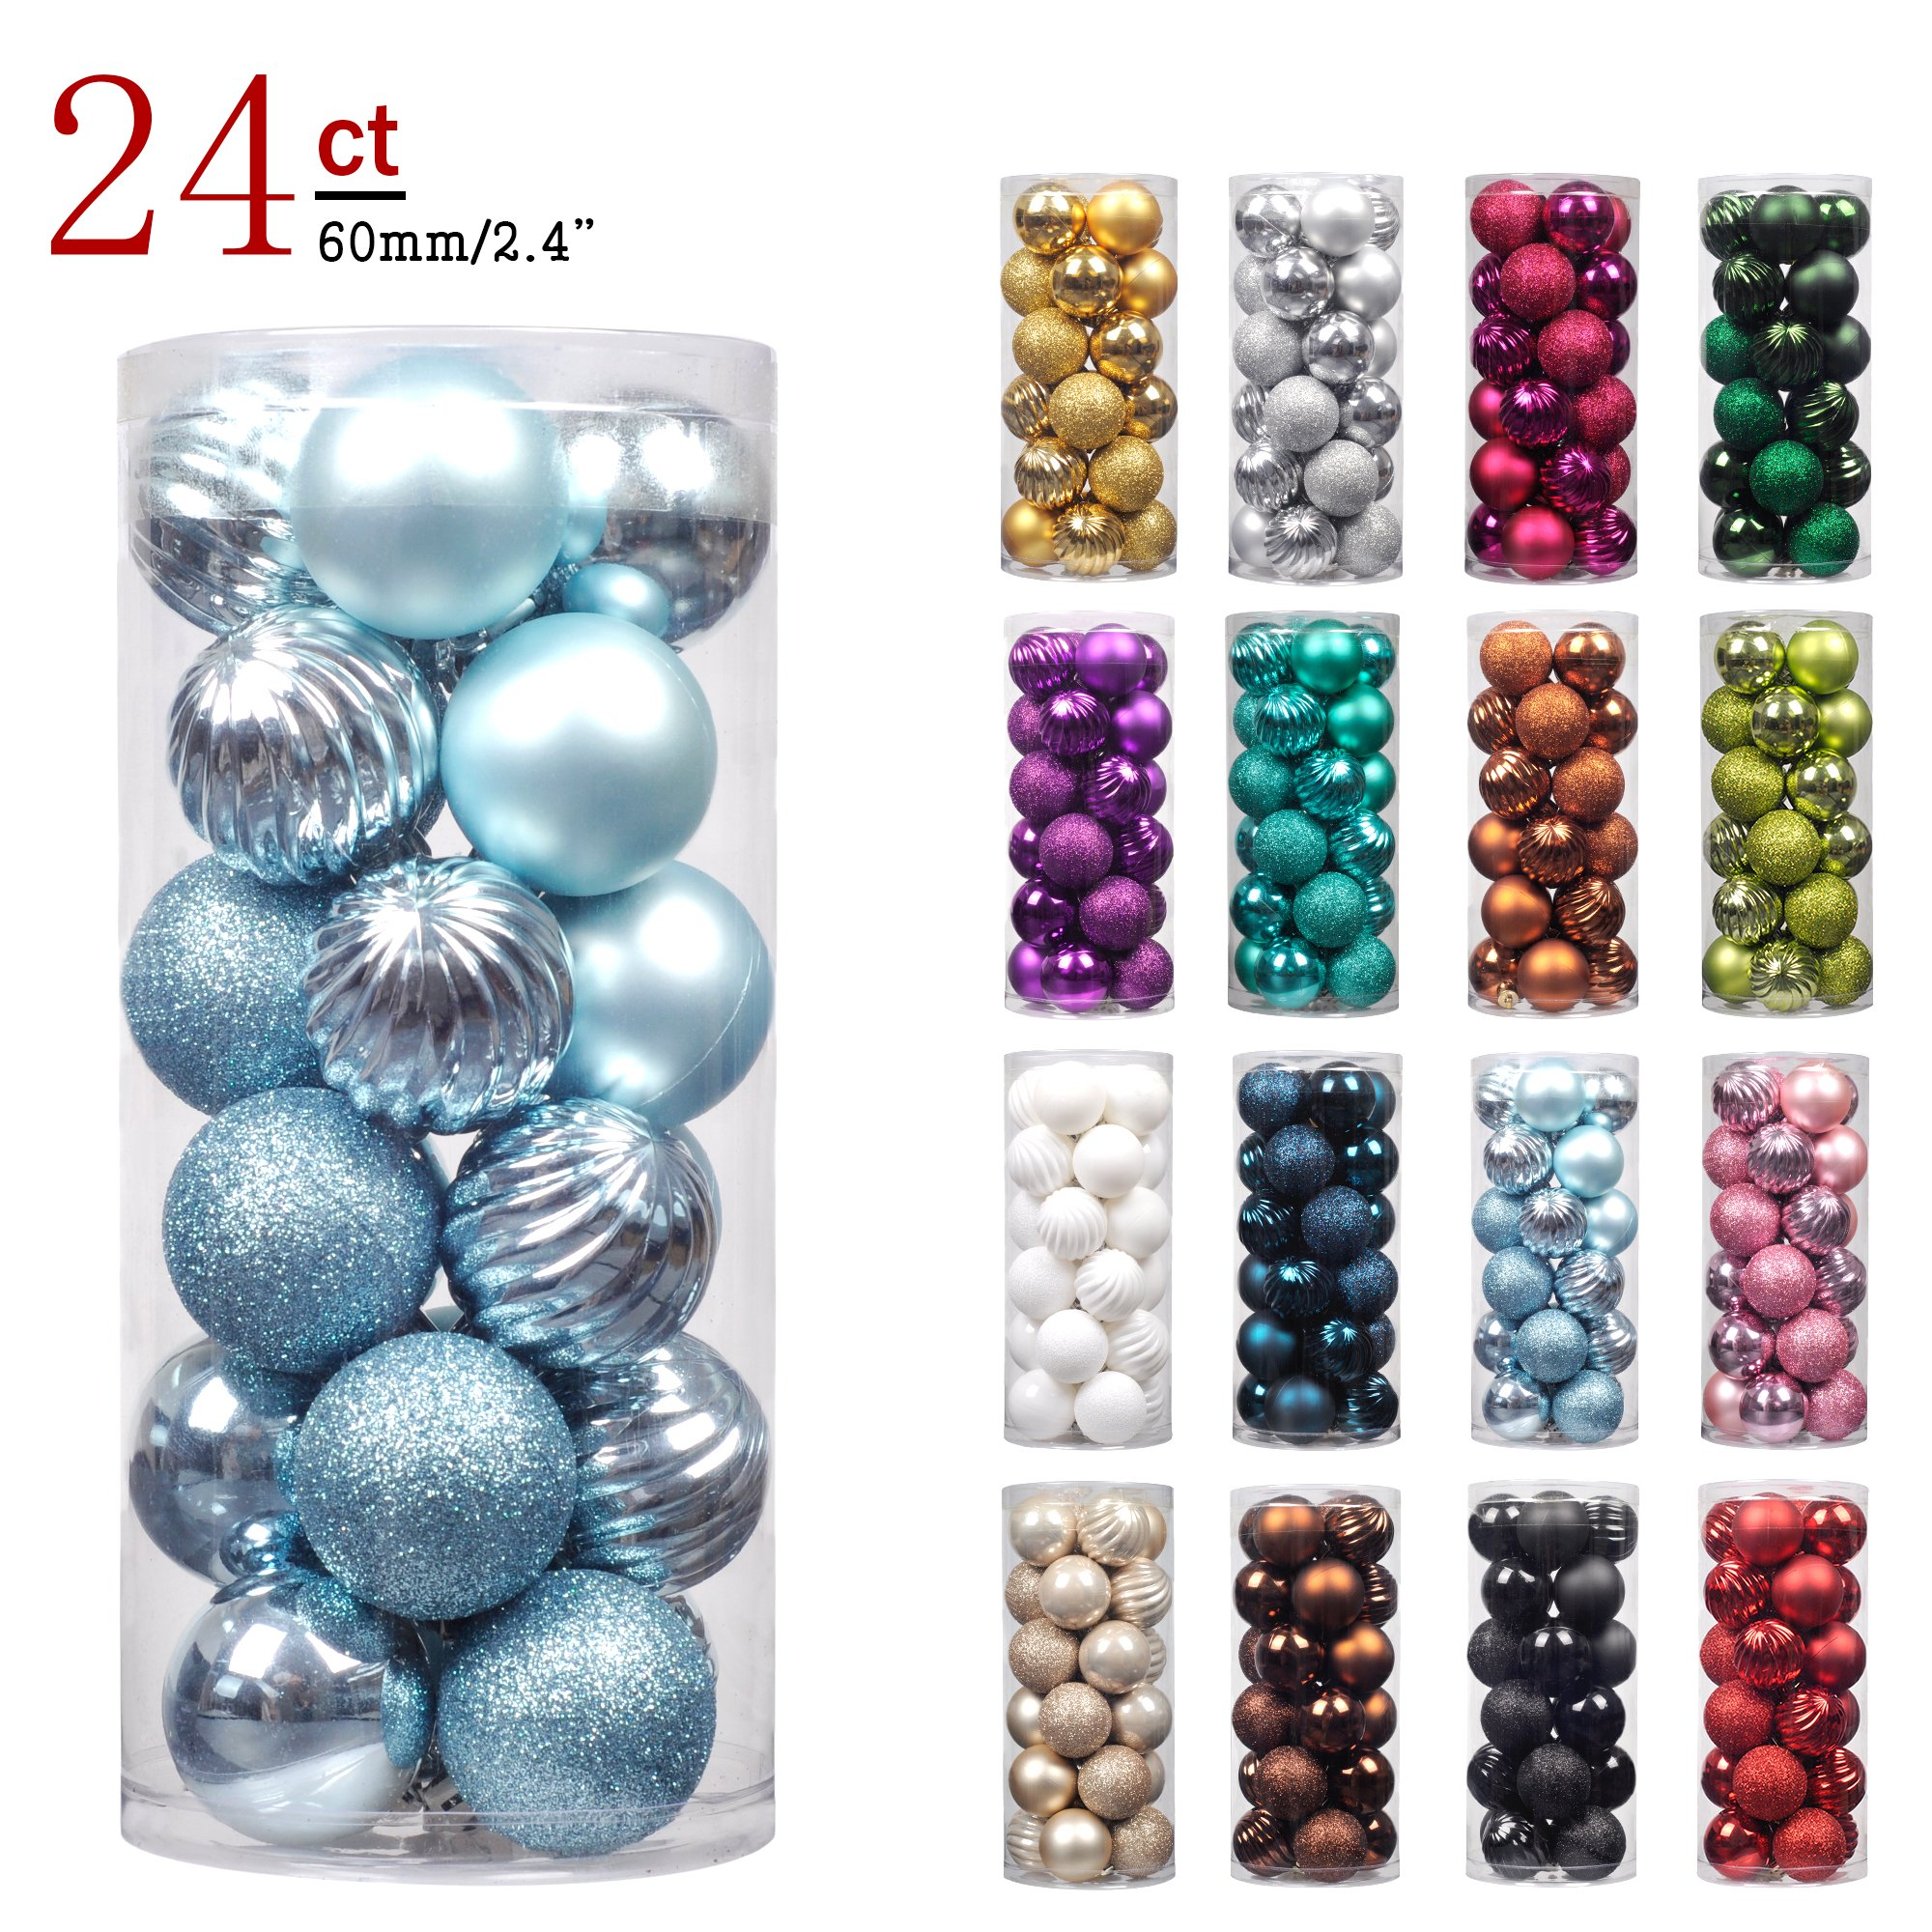 "KI Store 24ct Christmas Ball Ornaments Shatterproof Christmas Decorations Tree Balls Pastel for Holiday Wedding Party Decoration, Tree Ornaments Hooks included 2.36"" (60mm Baby Blue) by KI Store"